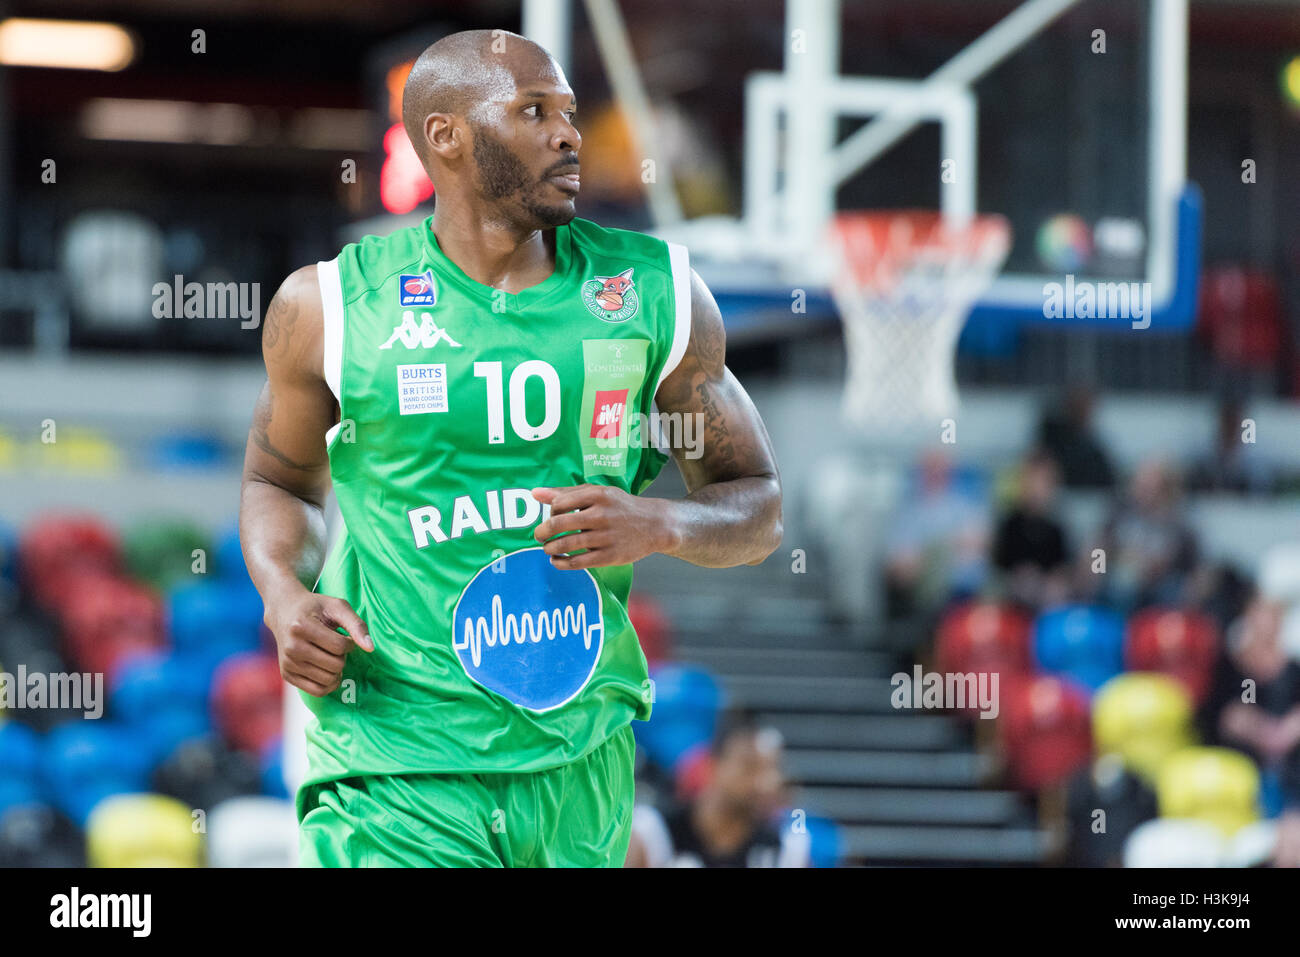 London, UK, 9 October 2016. London Lions beat Plymouth Raiders 105 vs 79 in the BBL cup game. Plymouth Raiders John - Stock Image